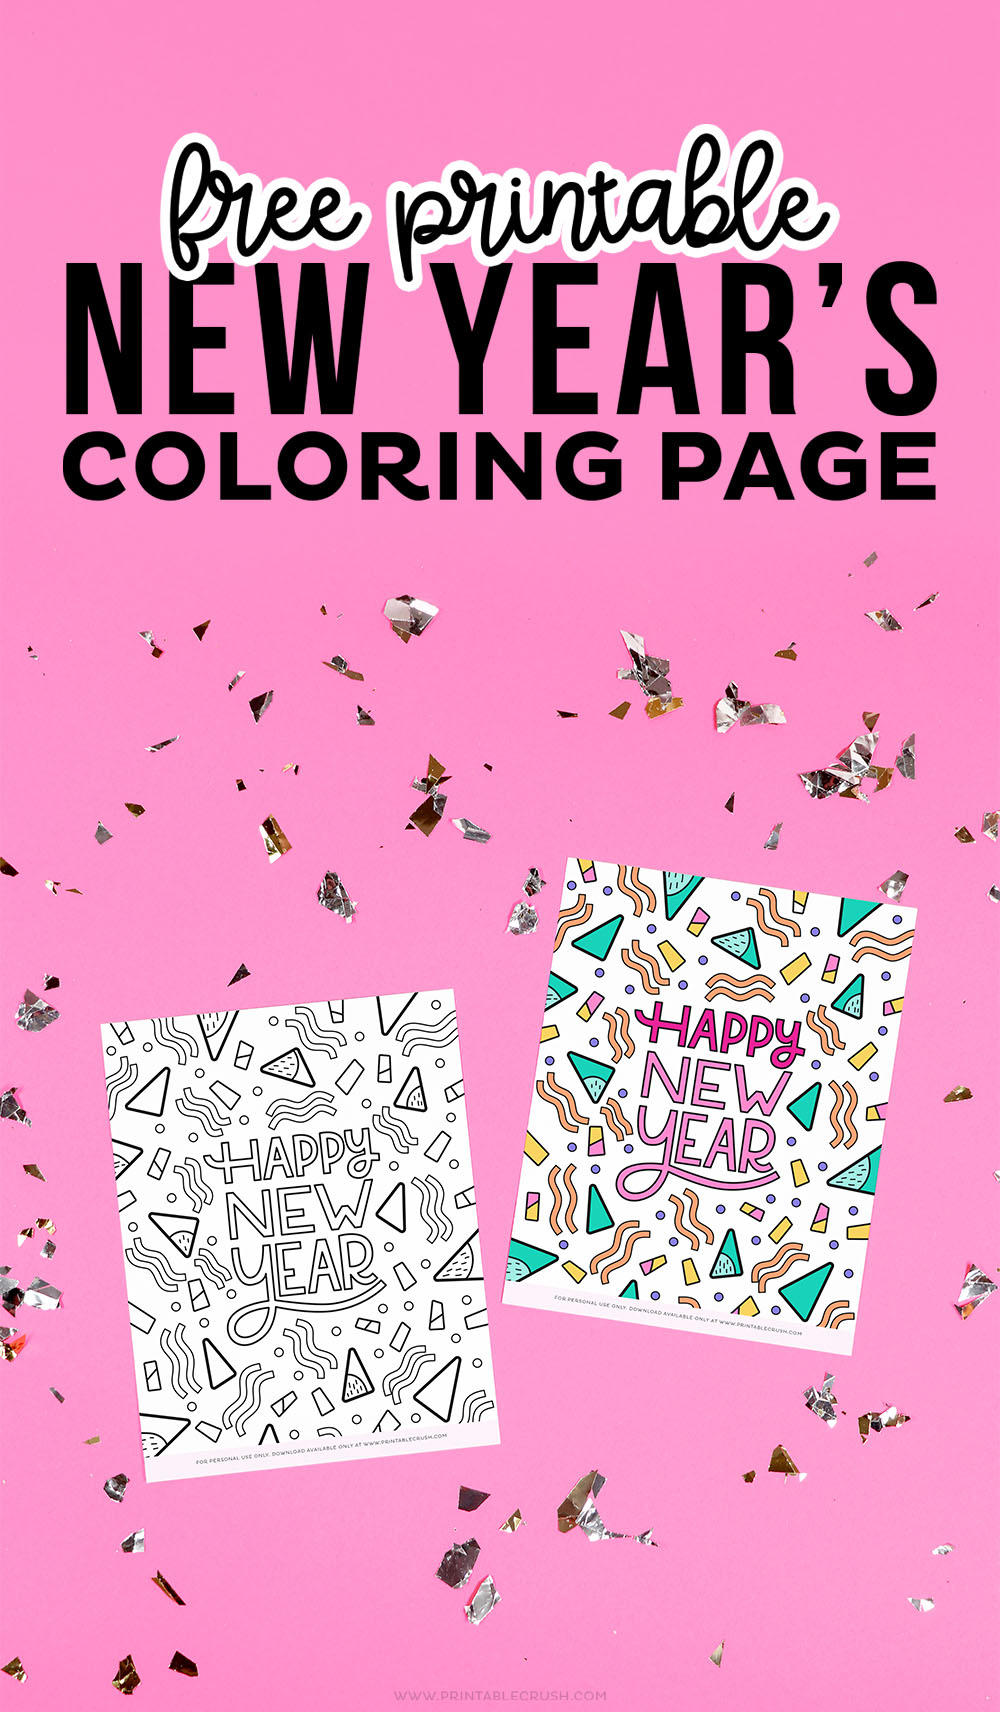 Free Coloring Page for New Year's - New Year's Coloring Page - Printable Crush